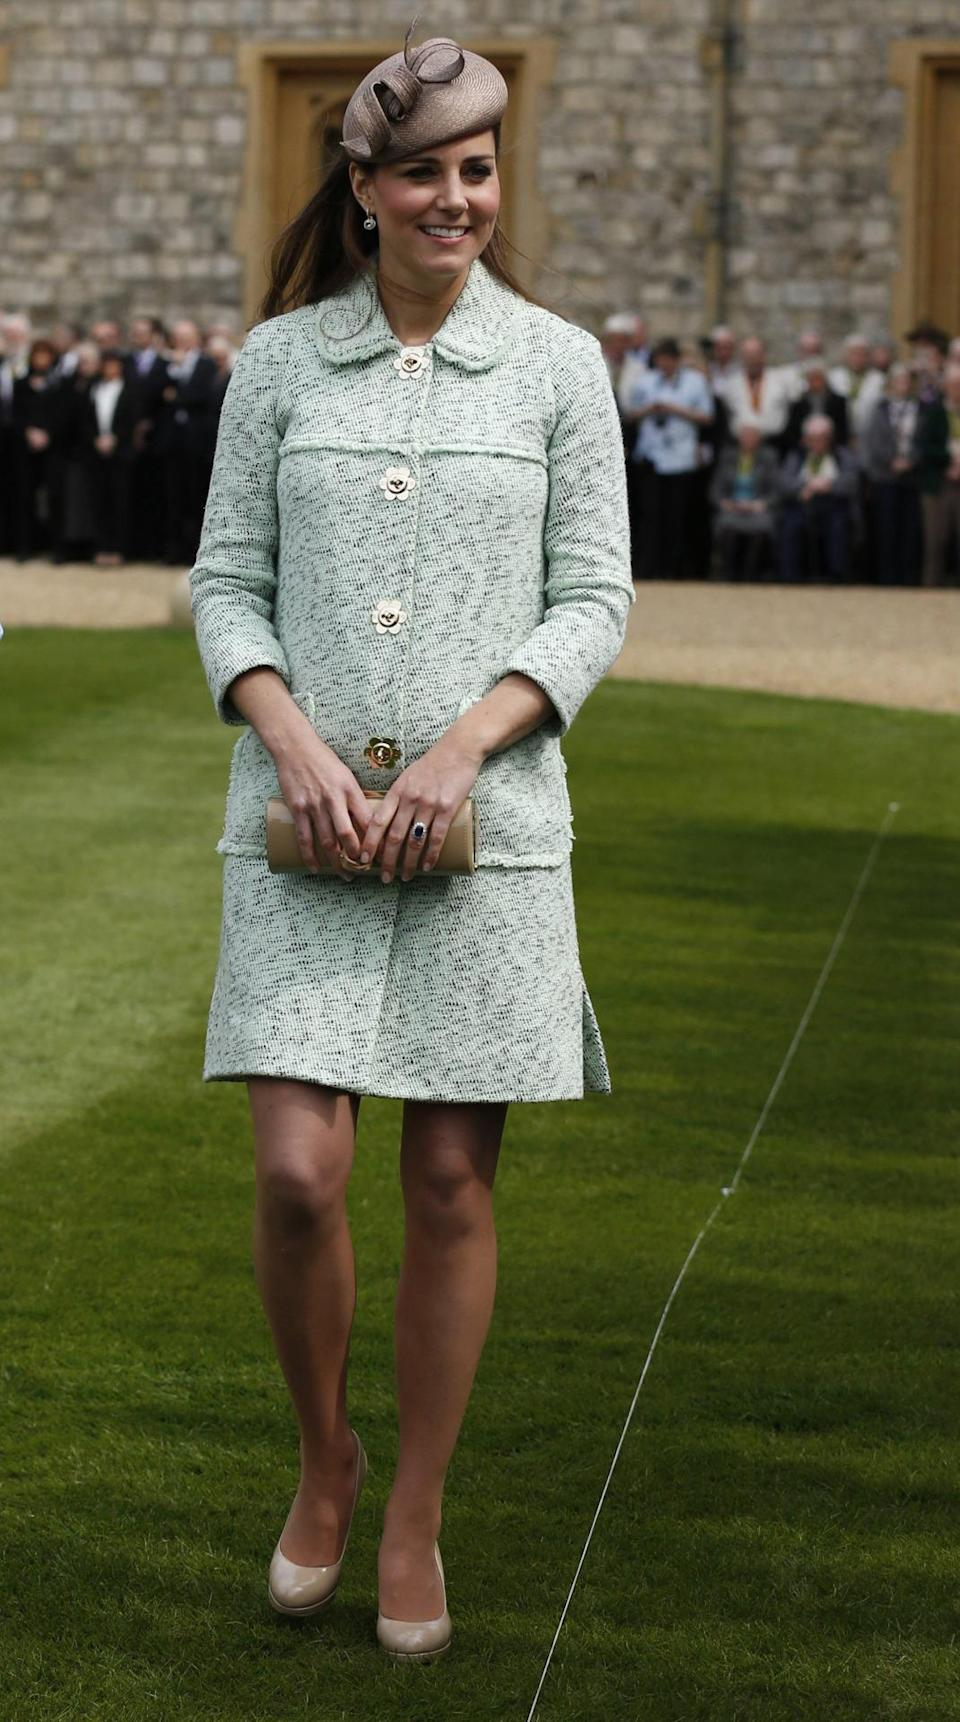 <p>The Duchess donned a mint tweed coat by Mulberry for a scouts event. She accessorised with a cappuccino-coloured beret and nude L.K. Bennett heels and bag. </p><p><i>[Photo: PA]</i></p>